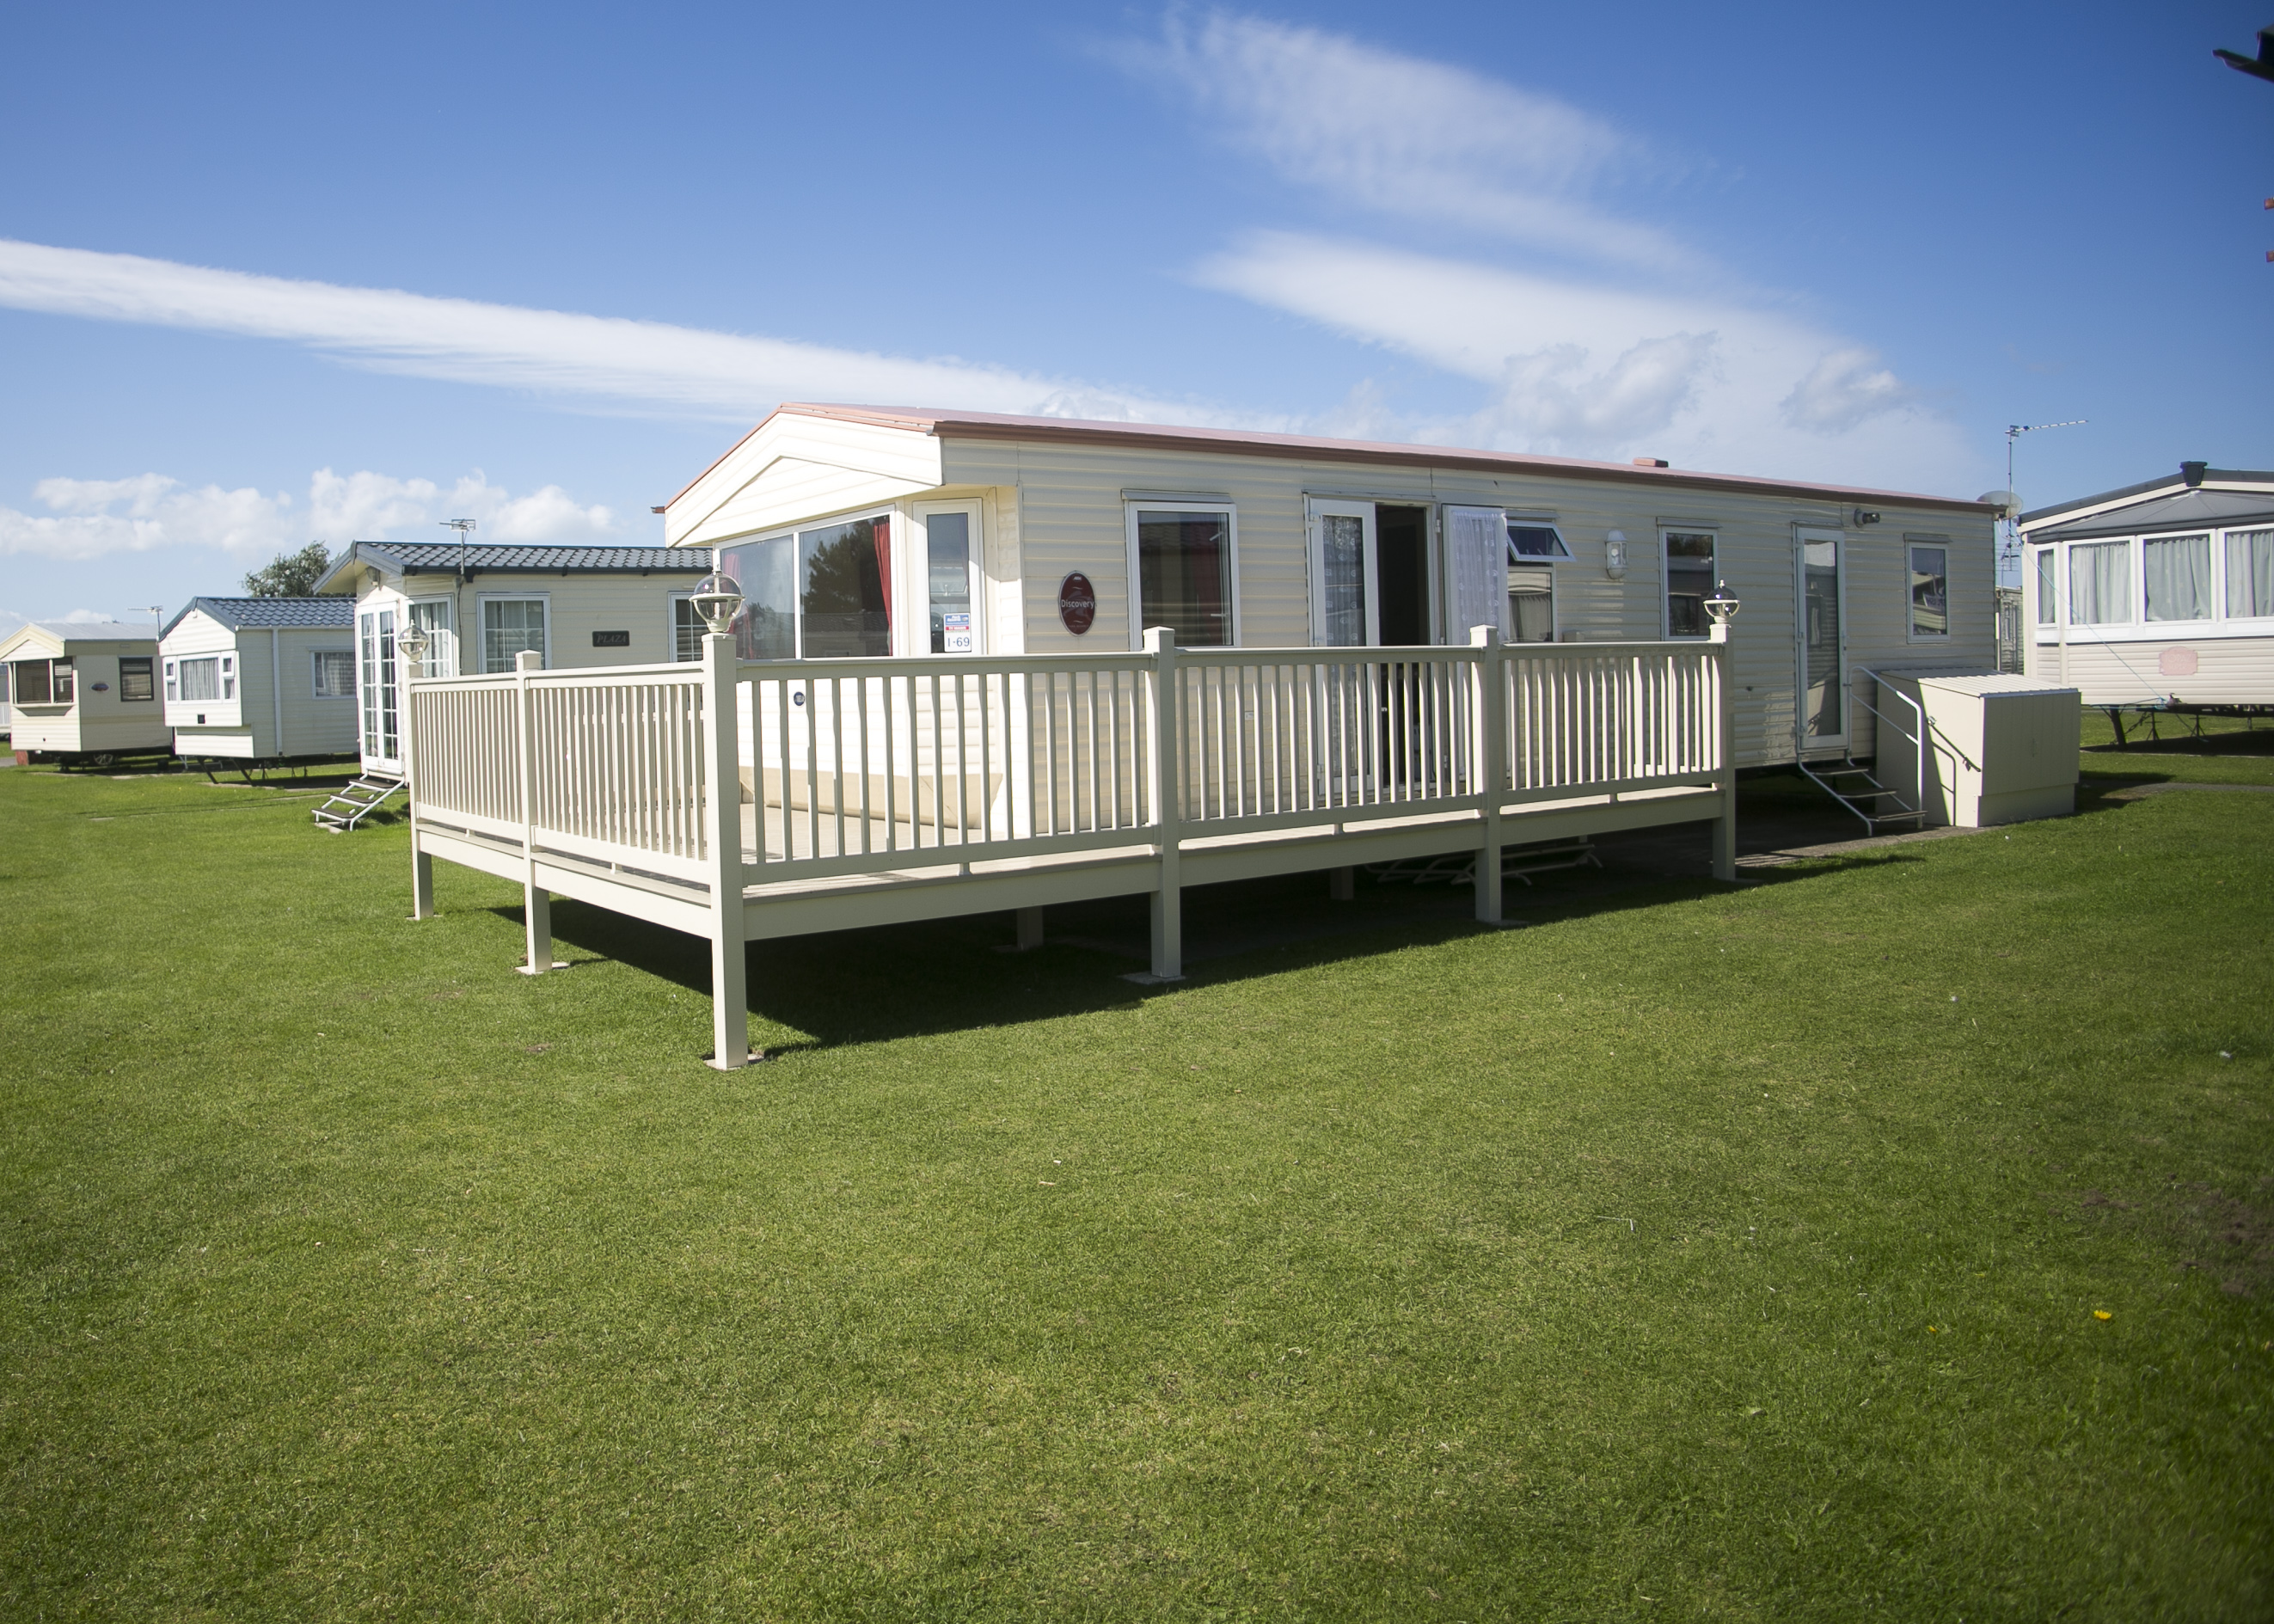 Awesome Private Caravans For Hire Or Rent Uk Caravan Holidays  2016 Car